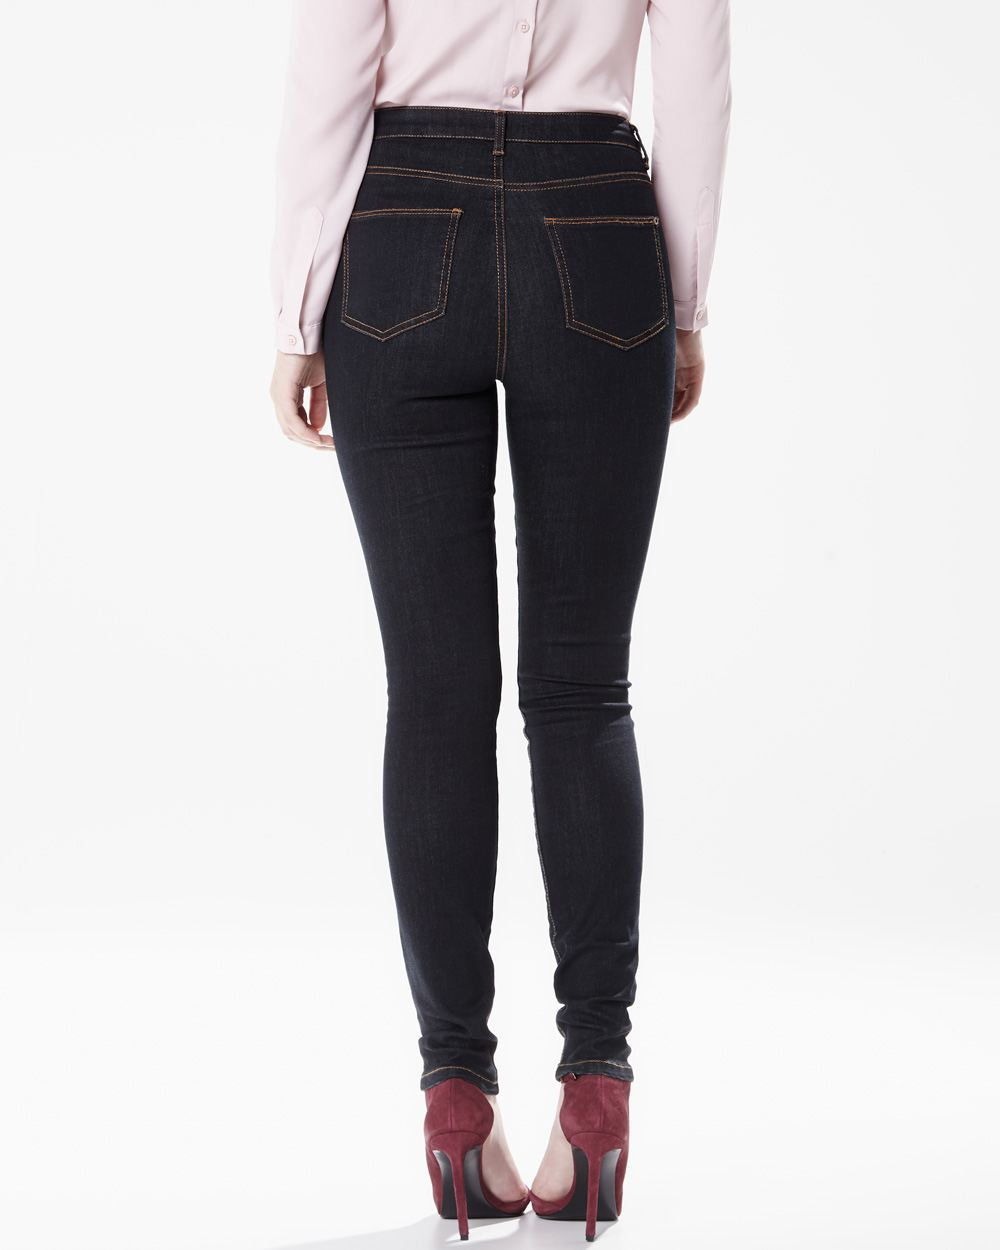 High waist skinny jeans in dark blue rinse | RW&CO.